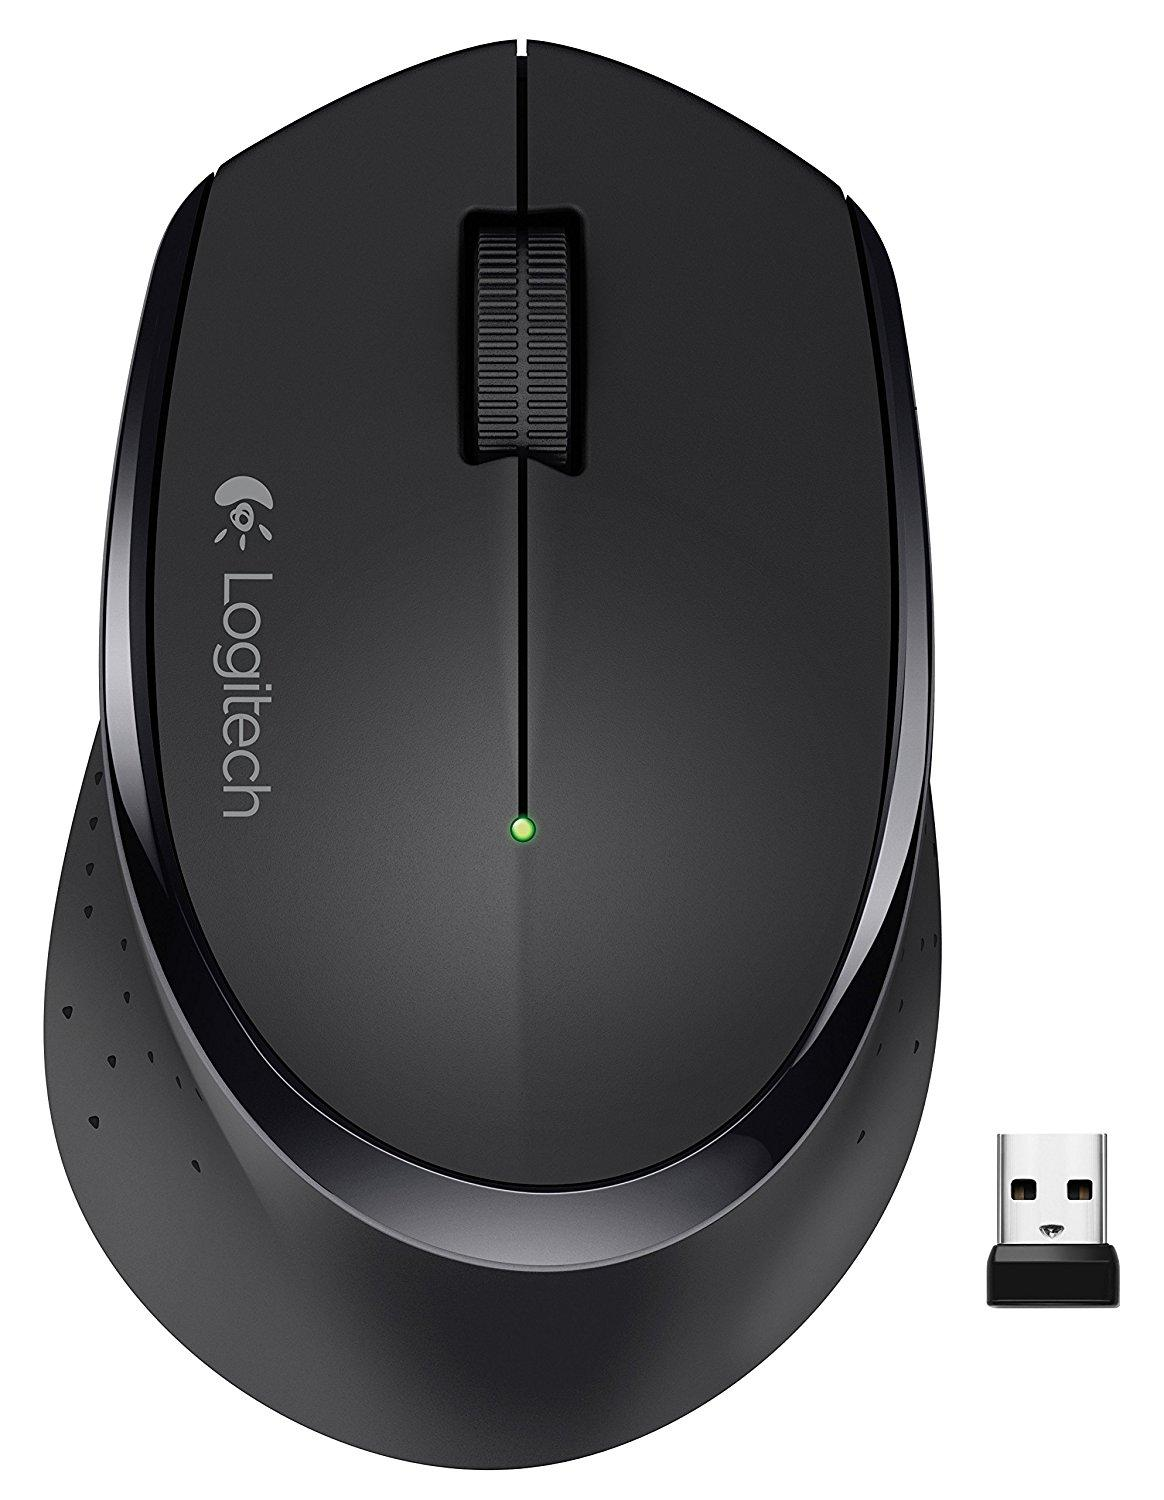 Logitech Wireless Mouse M275 Black - Local Seller(Online Exclusive)